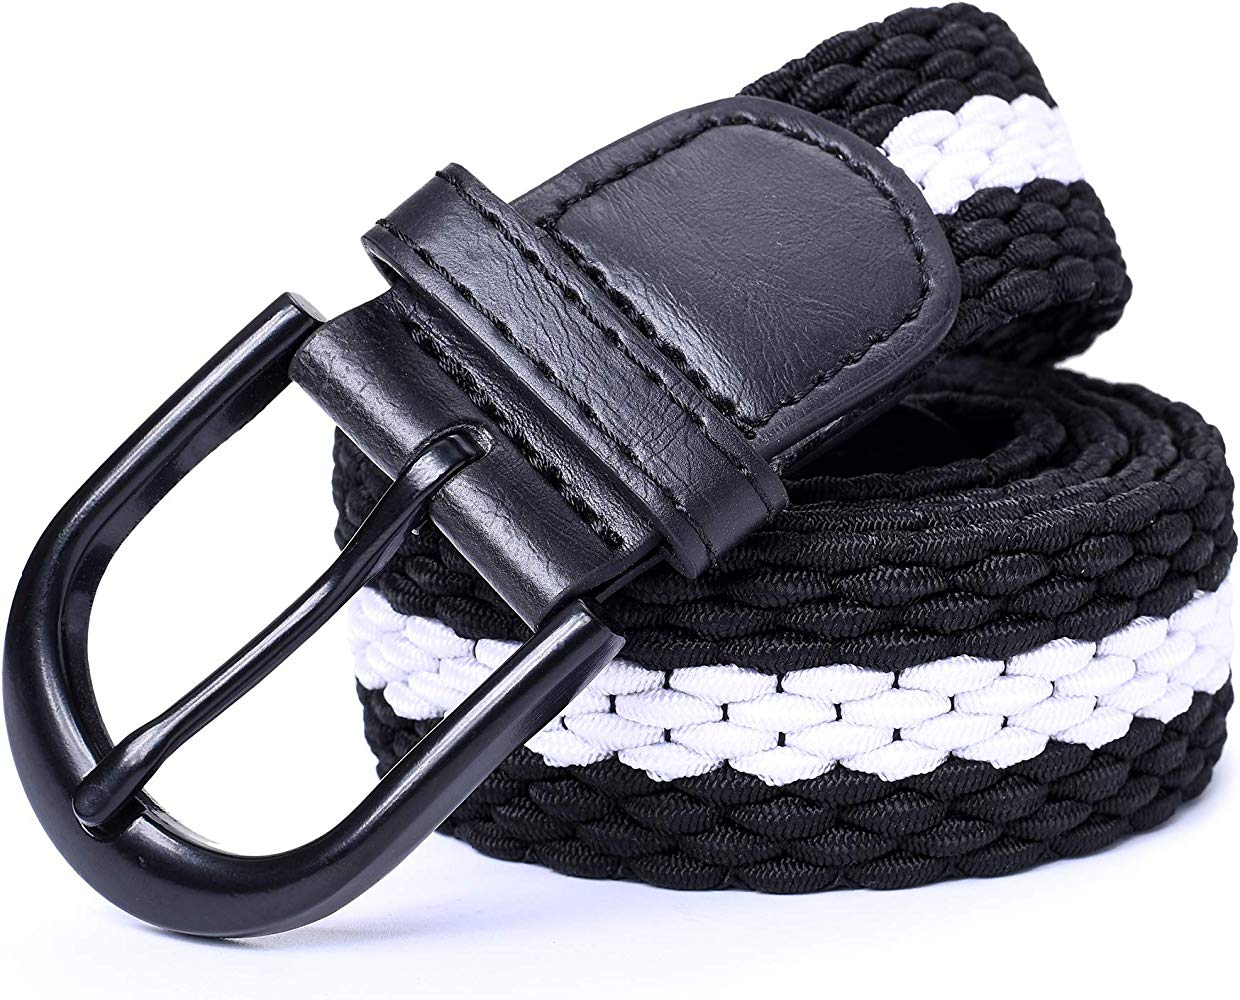 7 Sizes 27 Colors ) Braided Stretch Elastic Belt Pin Oval Solid Black Buckle Leather Loop End Tip Men//Women//Junior